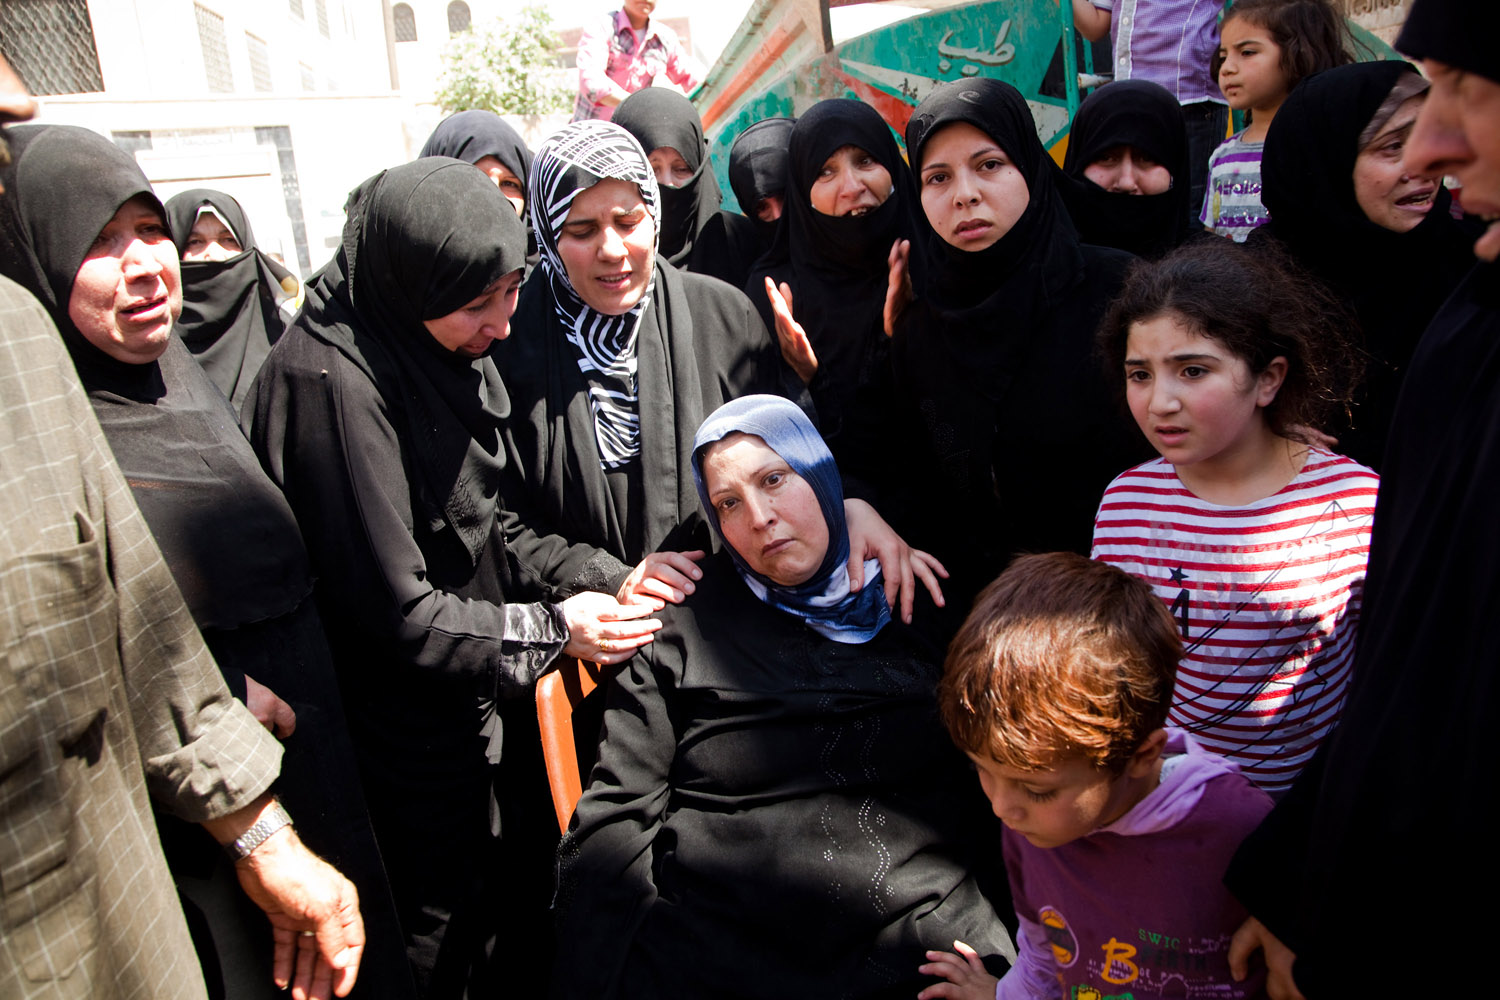 A woman faints during demonstrations that took place after many civilians were killed the night before by mortars fired on the city of Maarat Al Noman by the Syrian Army on June 10, 2012.